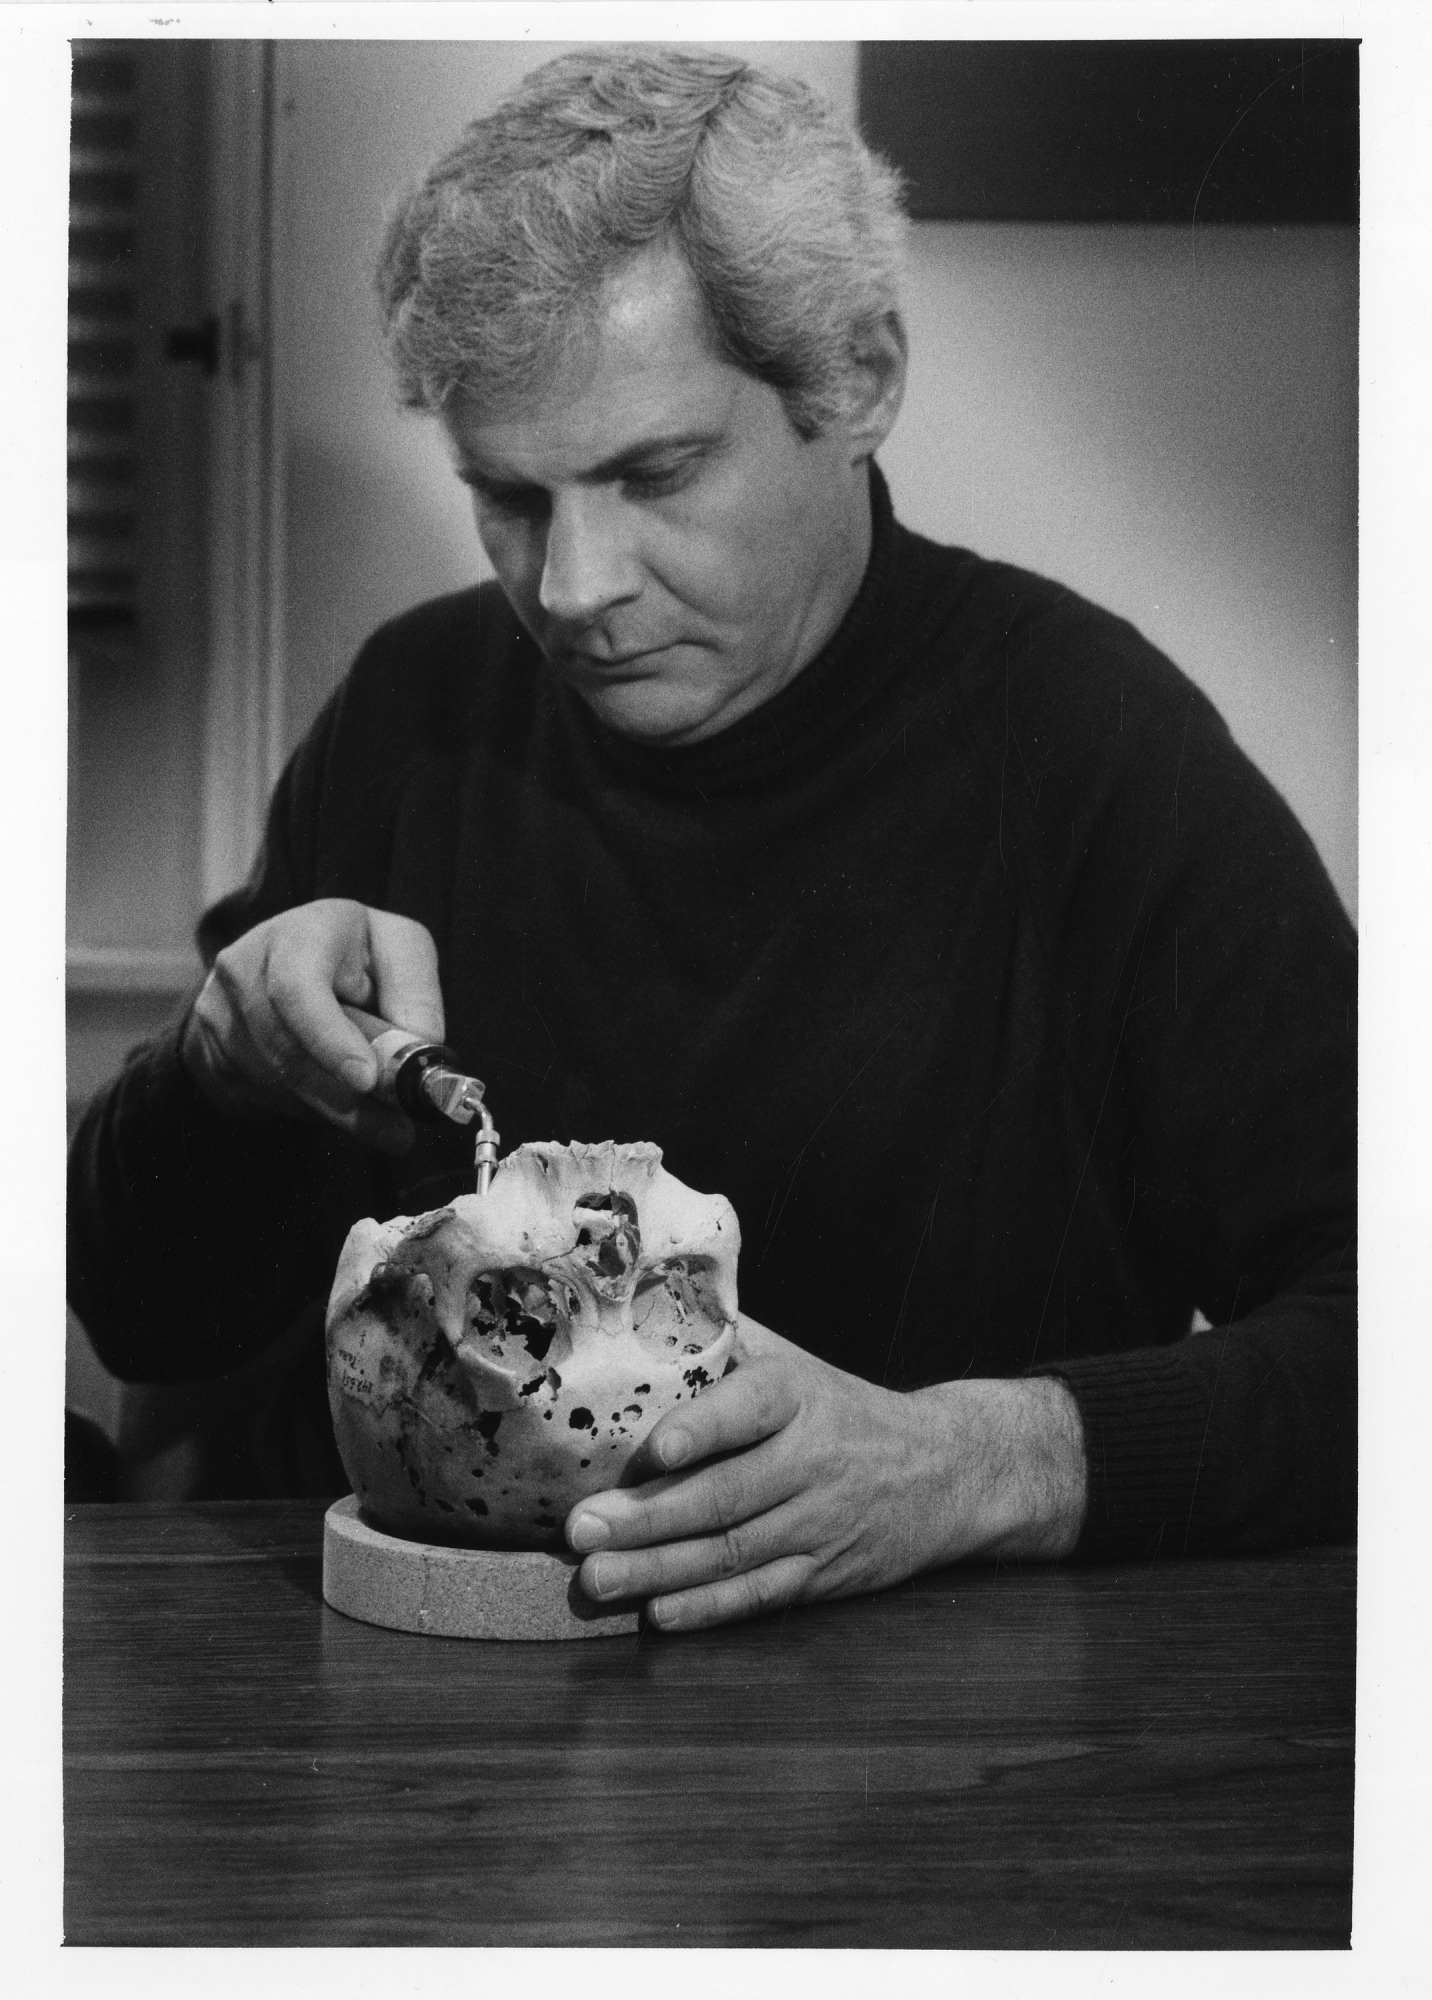 Dr. Donald J. Ortner, by Penland, Dane A, 1986, Smithsonian Archives - History Div, SIA2010-0617.